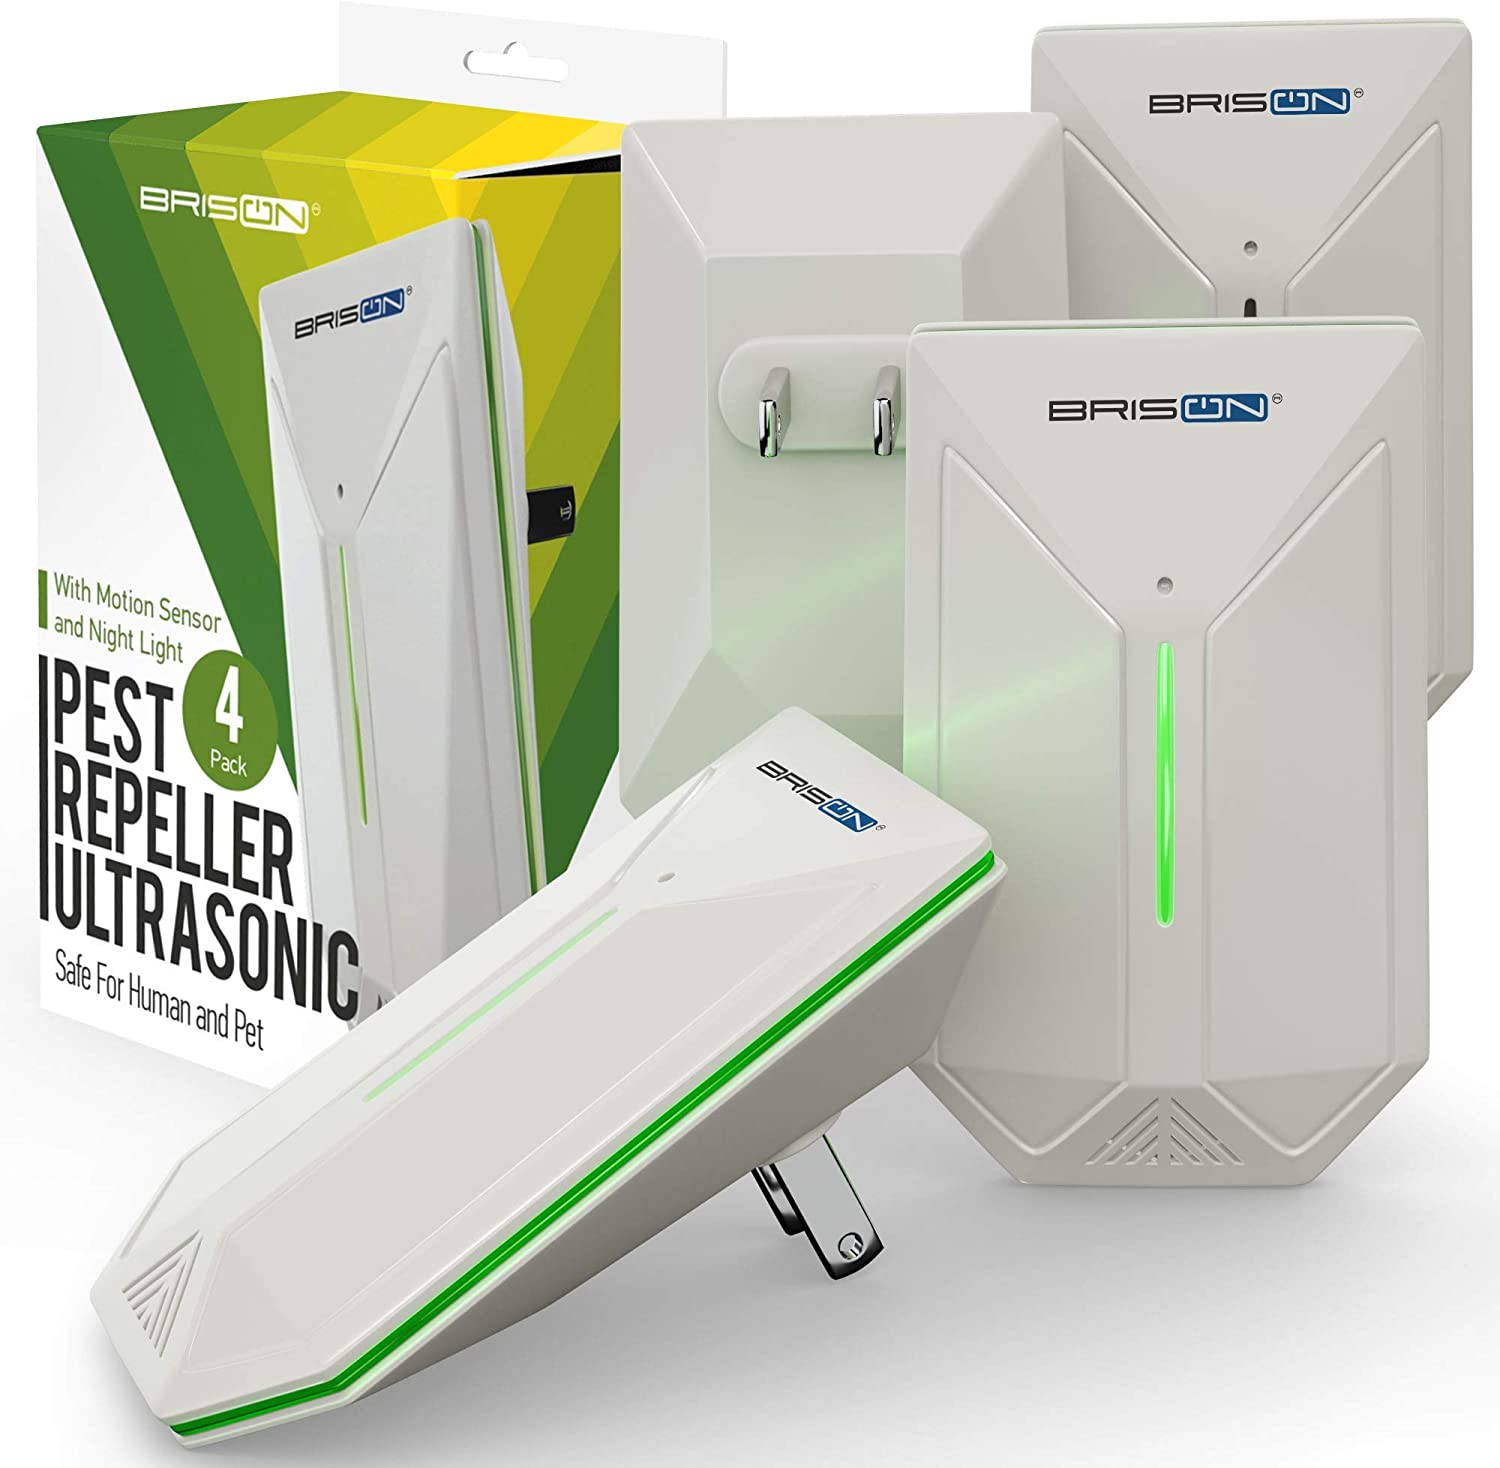 BRISON Ultrasonic Pest Repeller - Easy & Humane Way to Reject Rodents Ants Cockroaches Beds Bugs Mosquitos Fly Spiders Rats